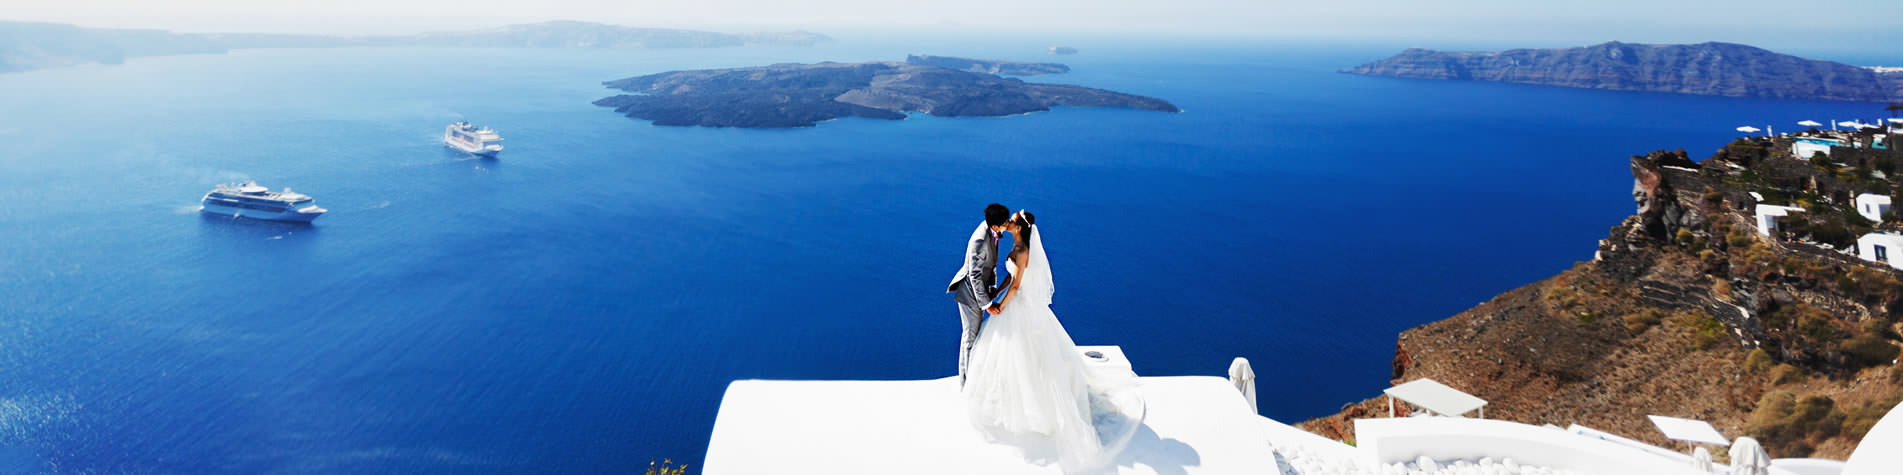 Weddings in Greece with Cyplon Holidays